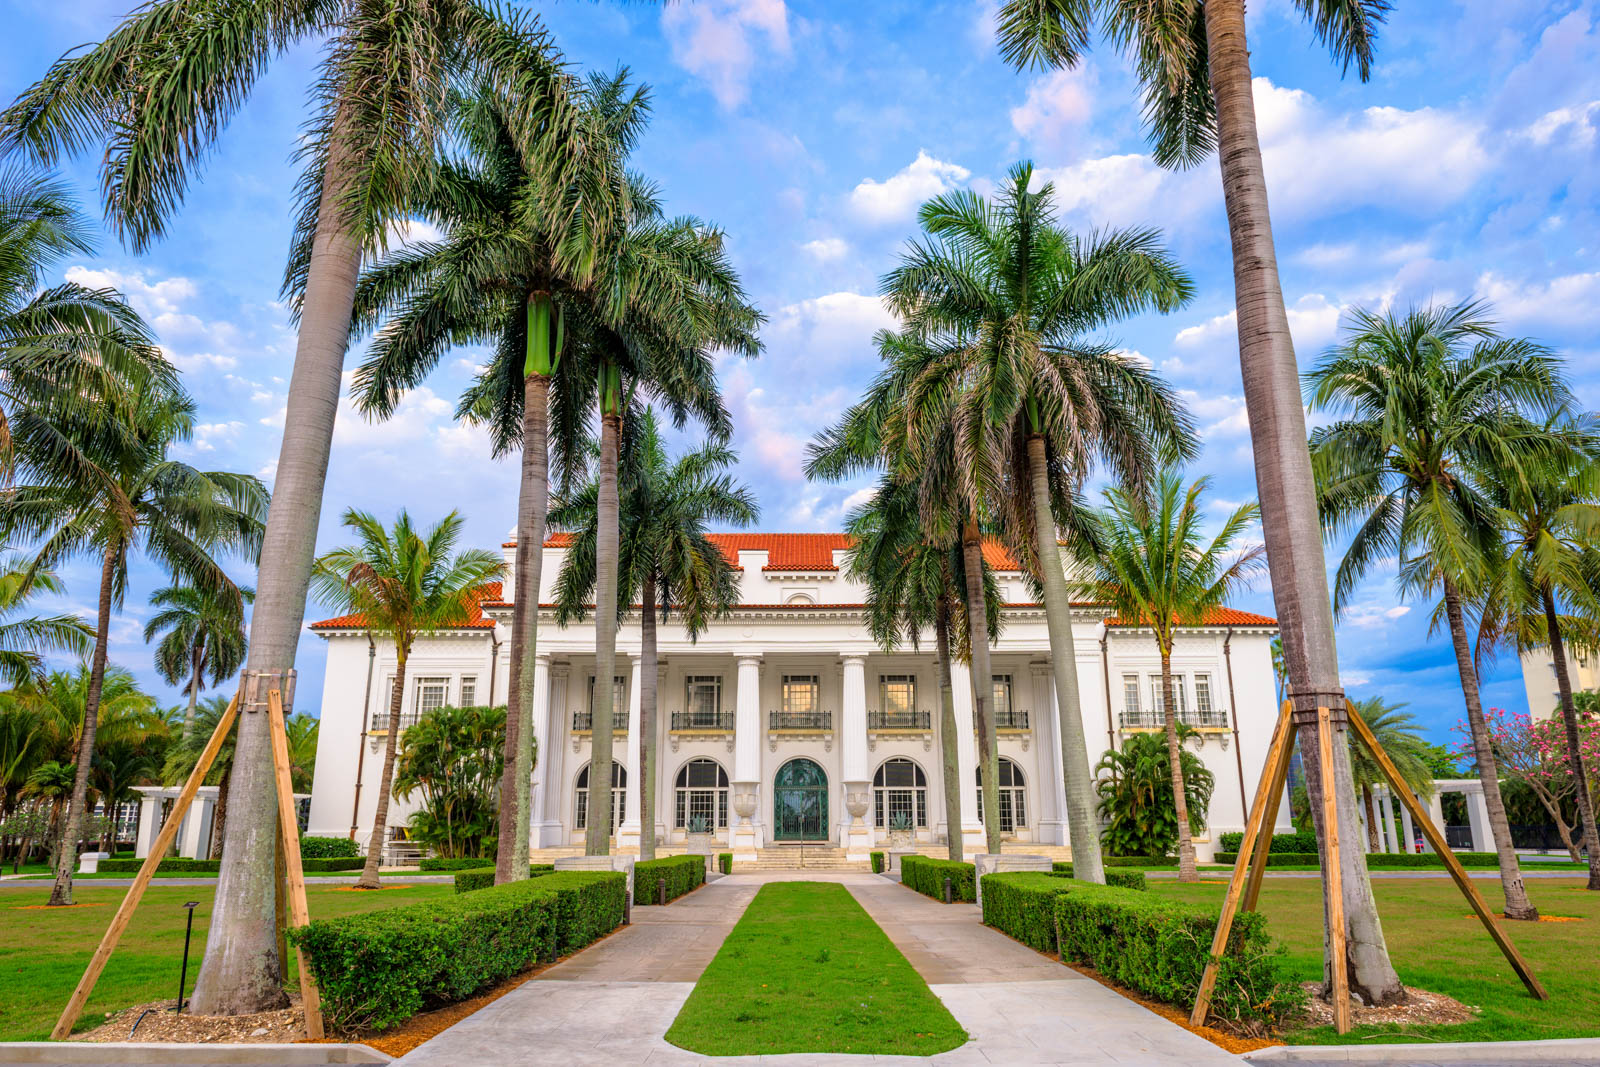 The Henry Flagler Museum exterior and grounds. Check out all the fun things to do in Florida West Palm Beach including the museum.